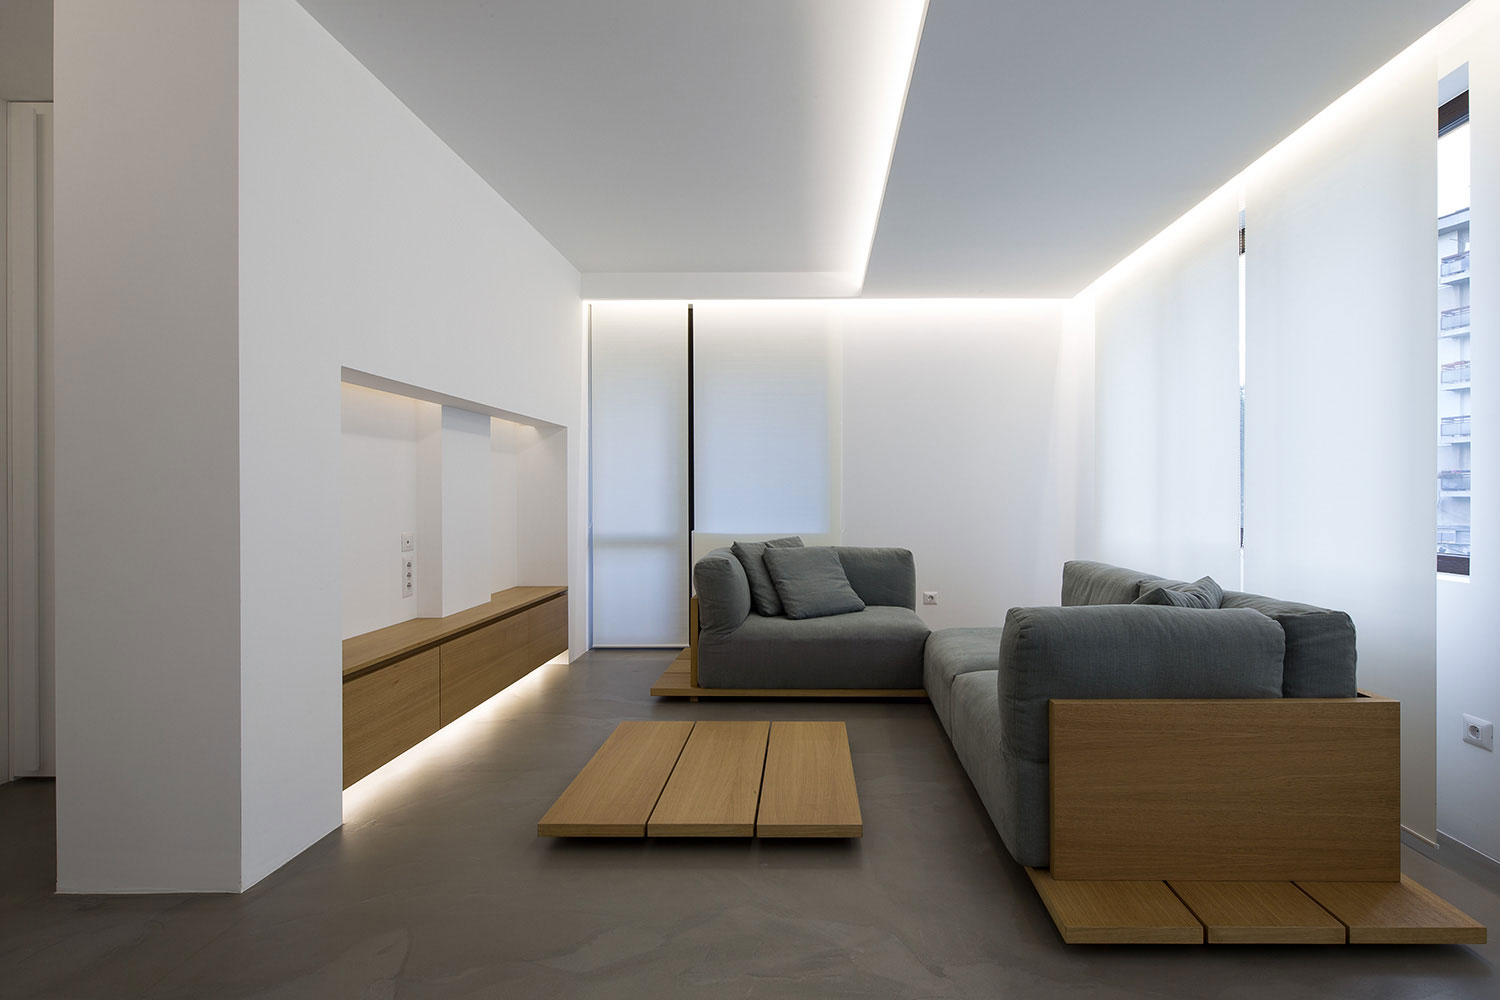 Elia nedkov designs a minimalist interior in sofia bulgaria for Minimalist apartment design